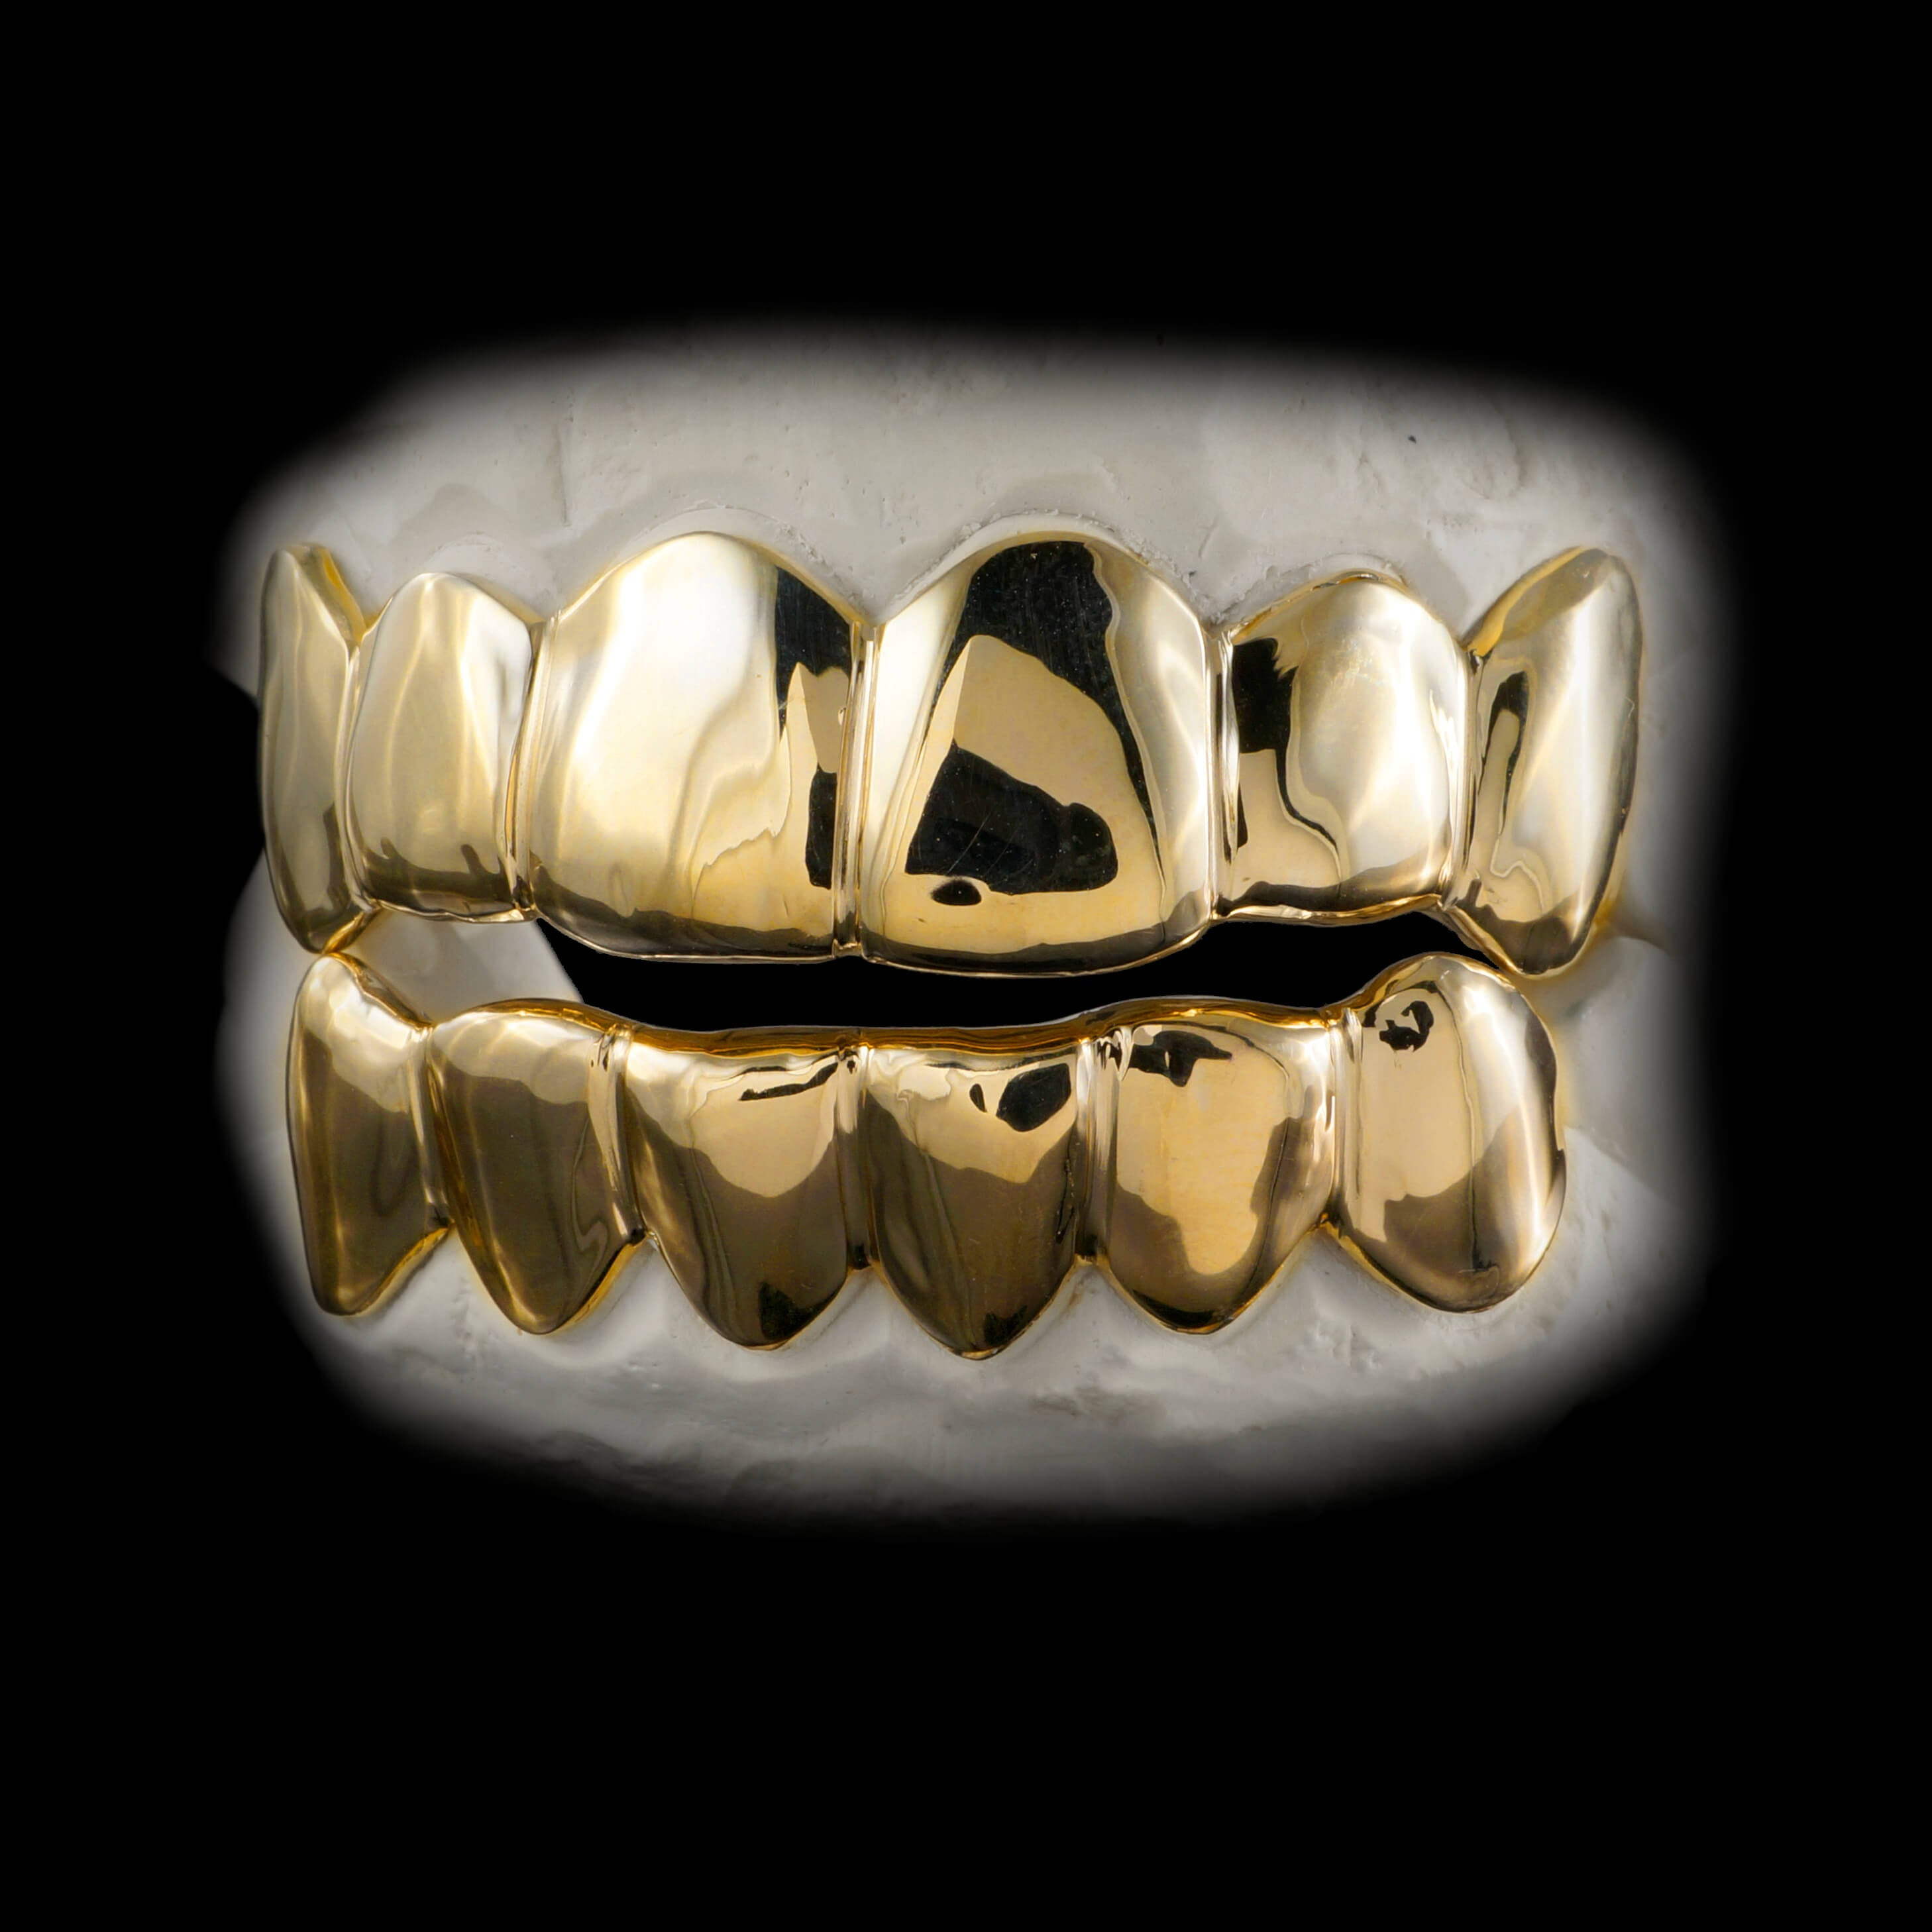 6 Tooth Top and 6 Tooth Bottom Grillz Set